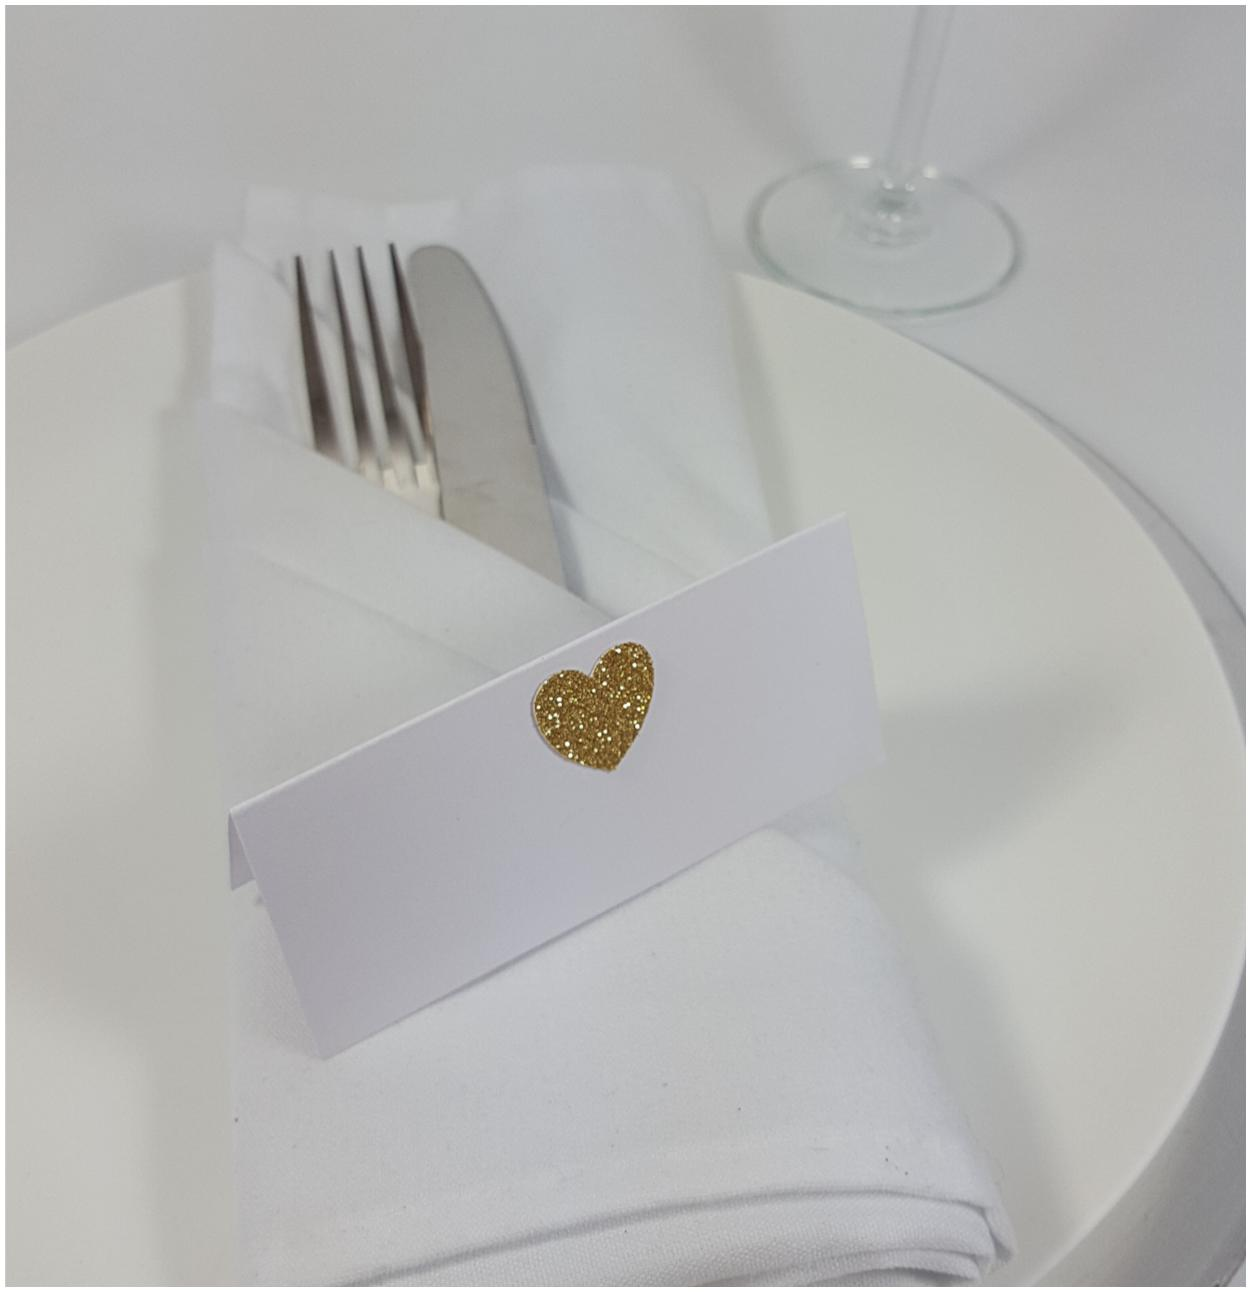 Glitter Heart Wedding Place Cards Printed Or Diy Blank Guest Place Setting Table Name Cards Dinner Party Anniversary Rose Gold Silver